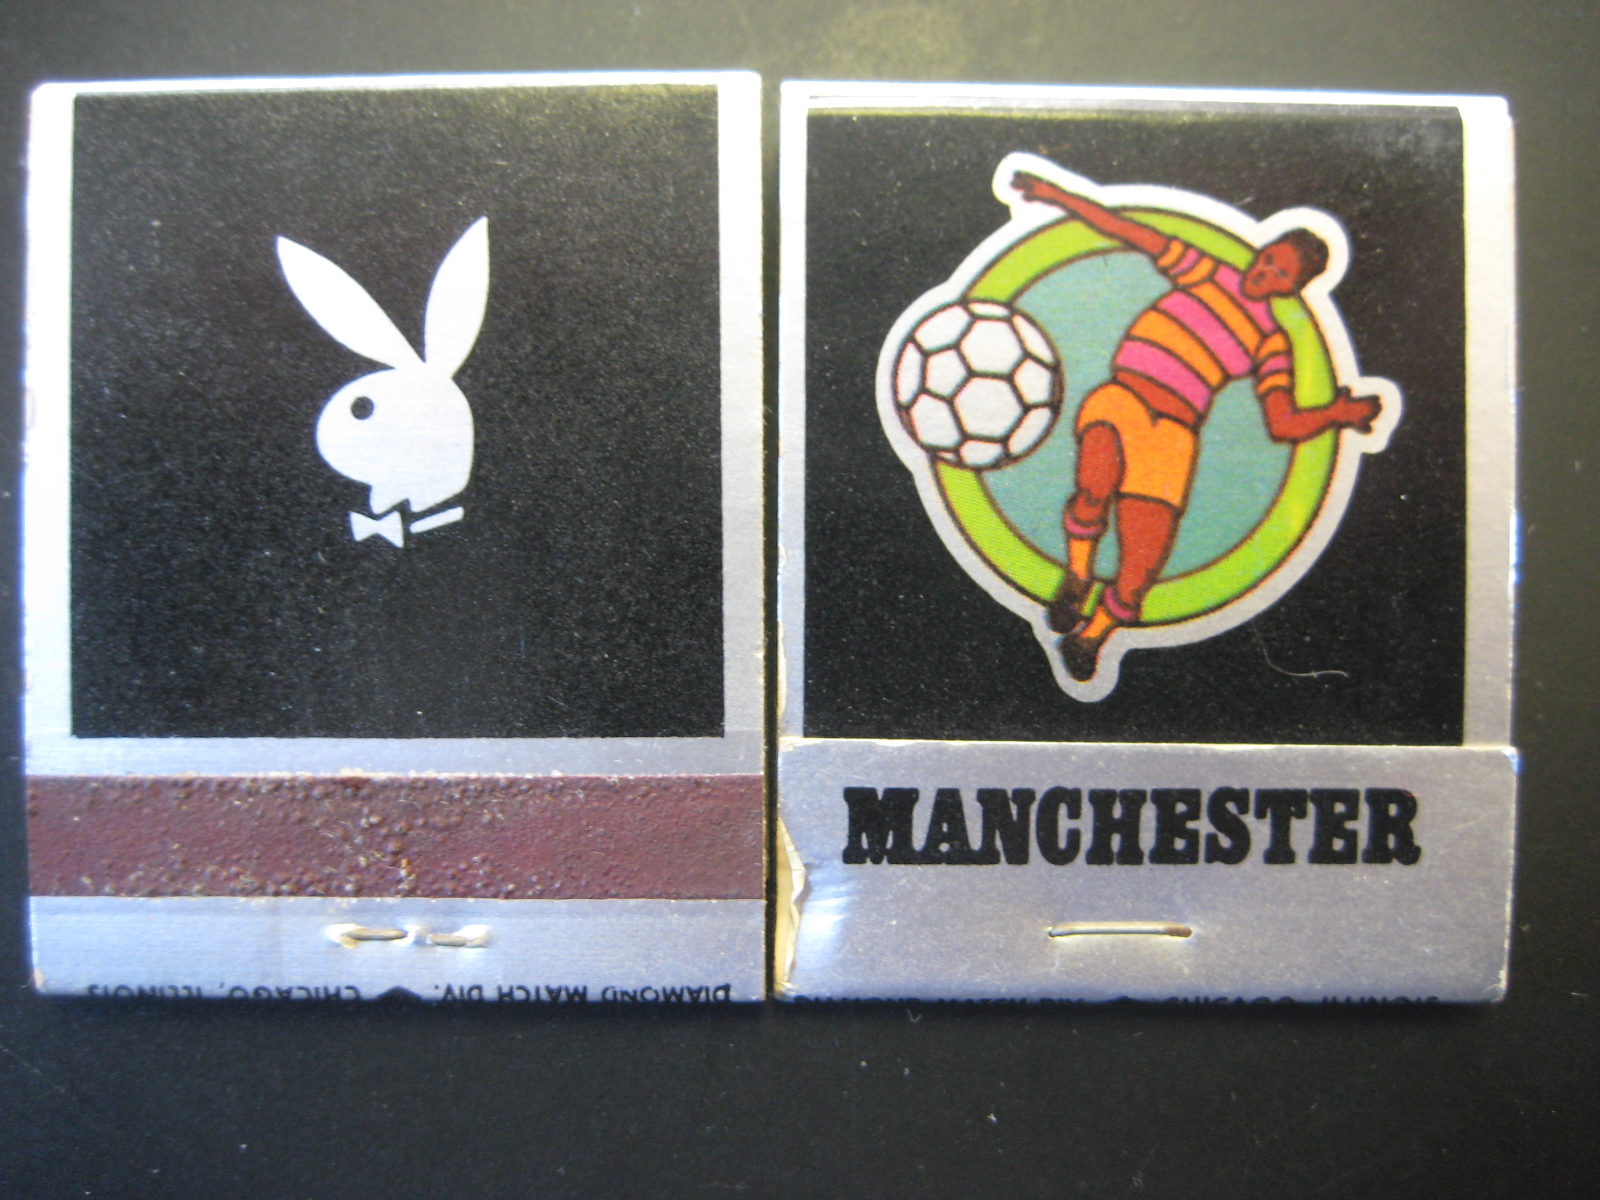 Manchester Playboy Club Matches